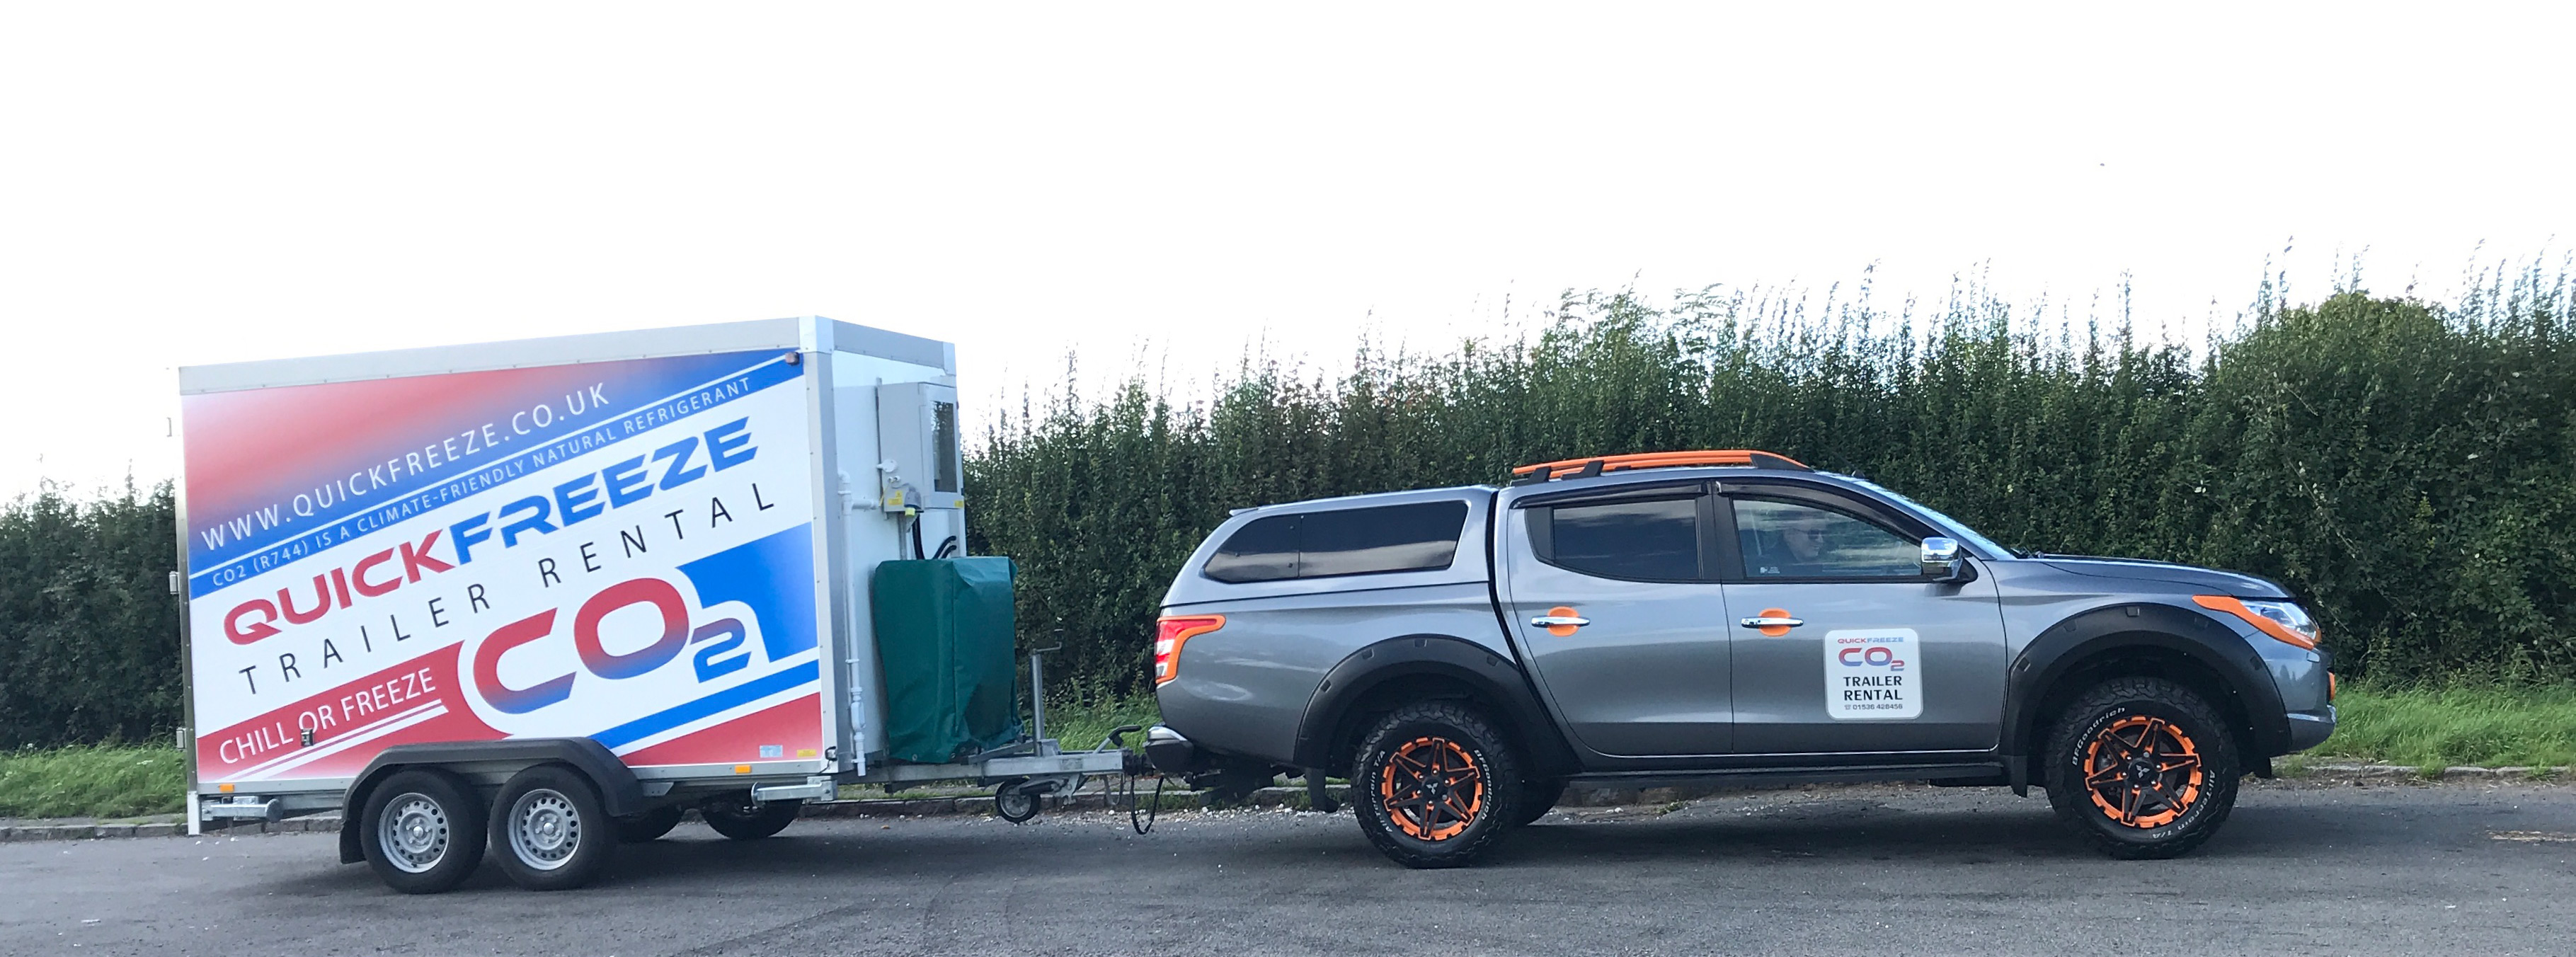 Quickfreeze Trailer and Car